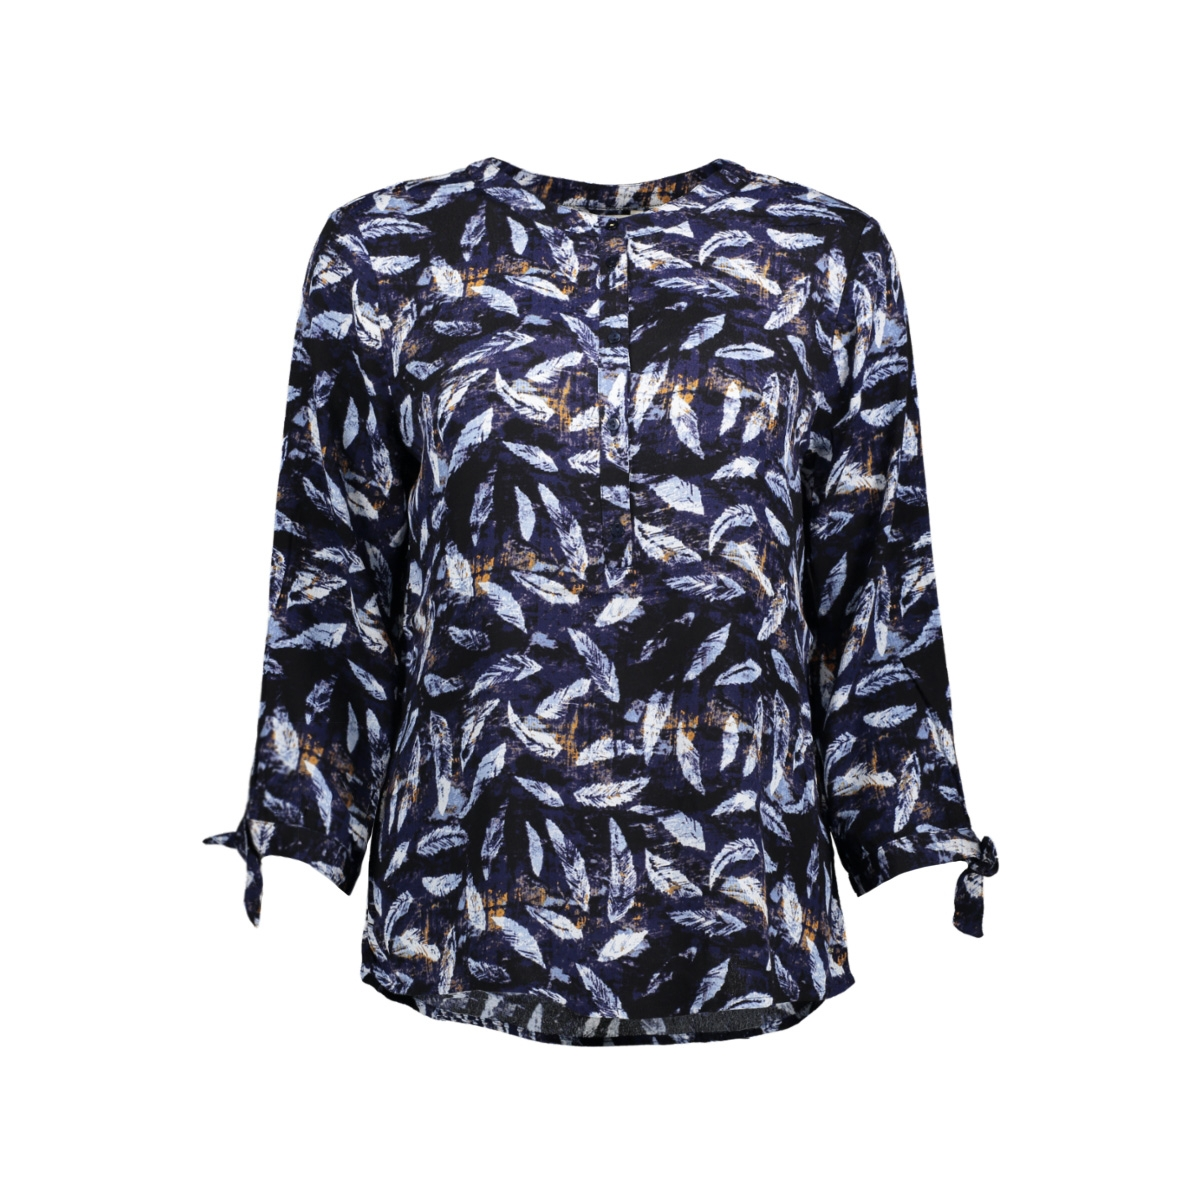 2055123.00.71 tom tailor blouse 1000